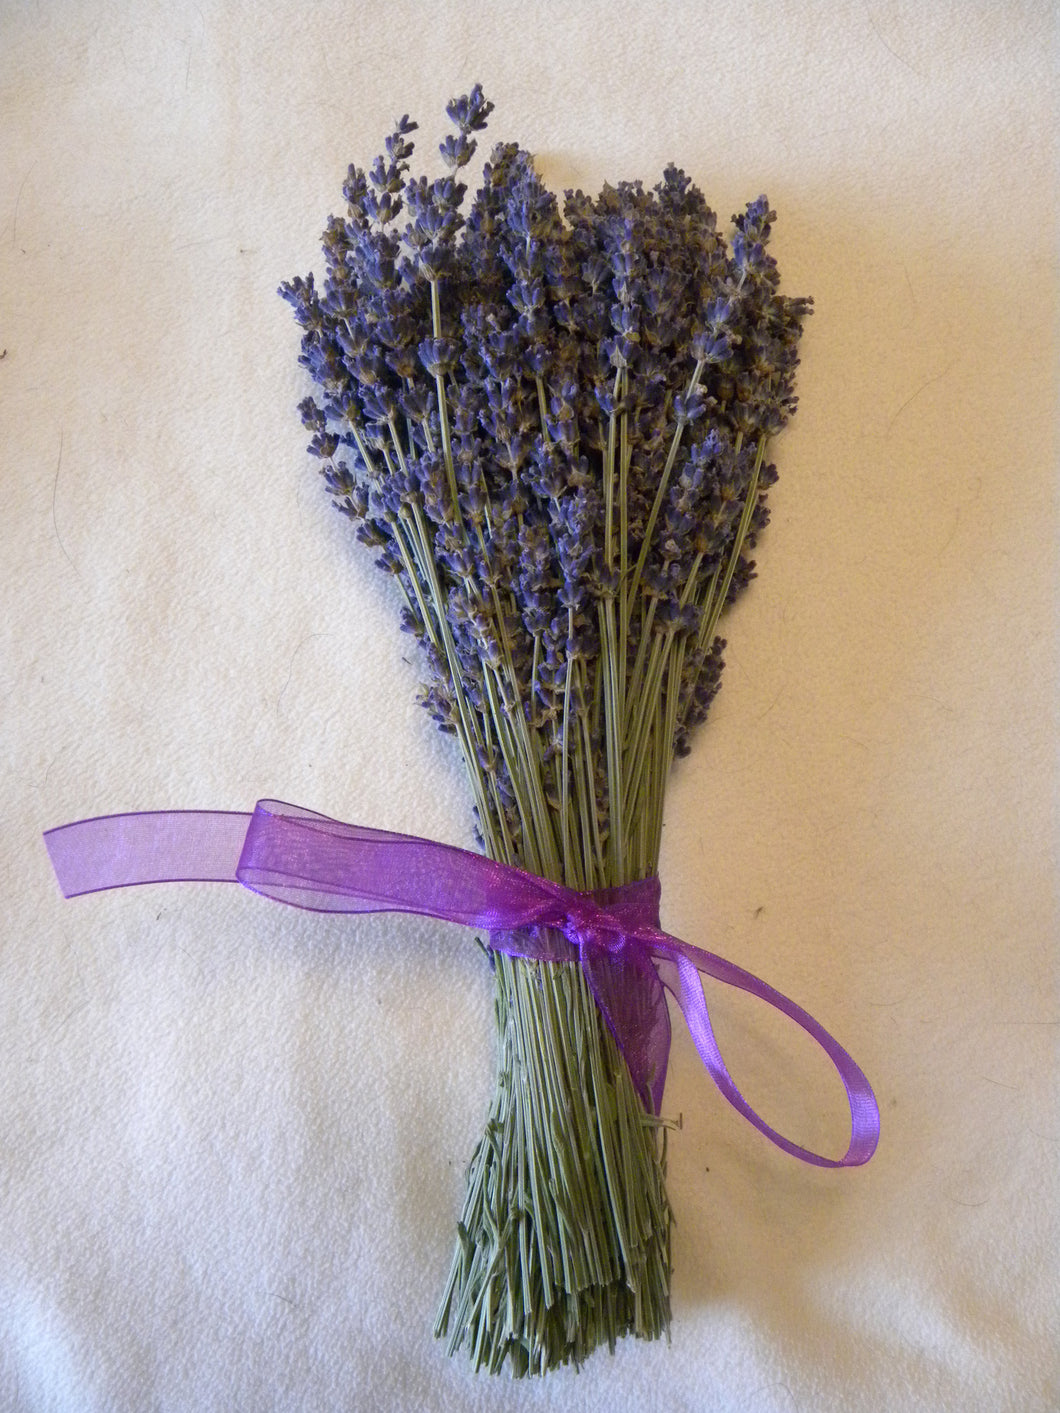 4 x Dried English Lavender Bouquets